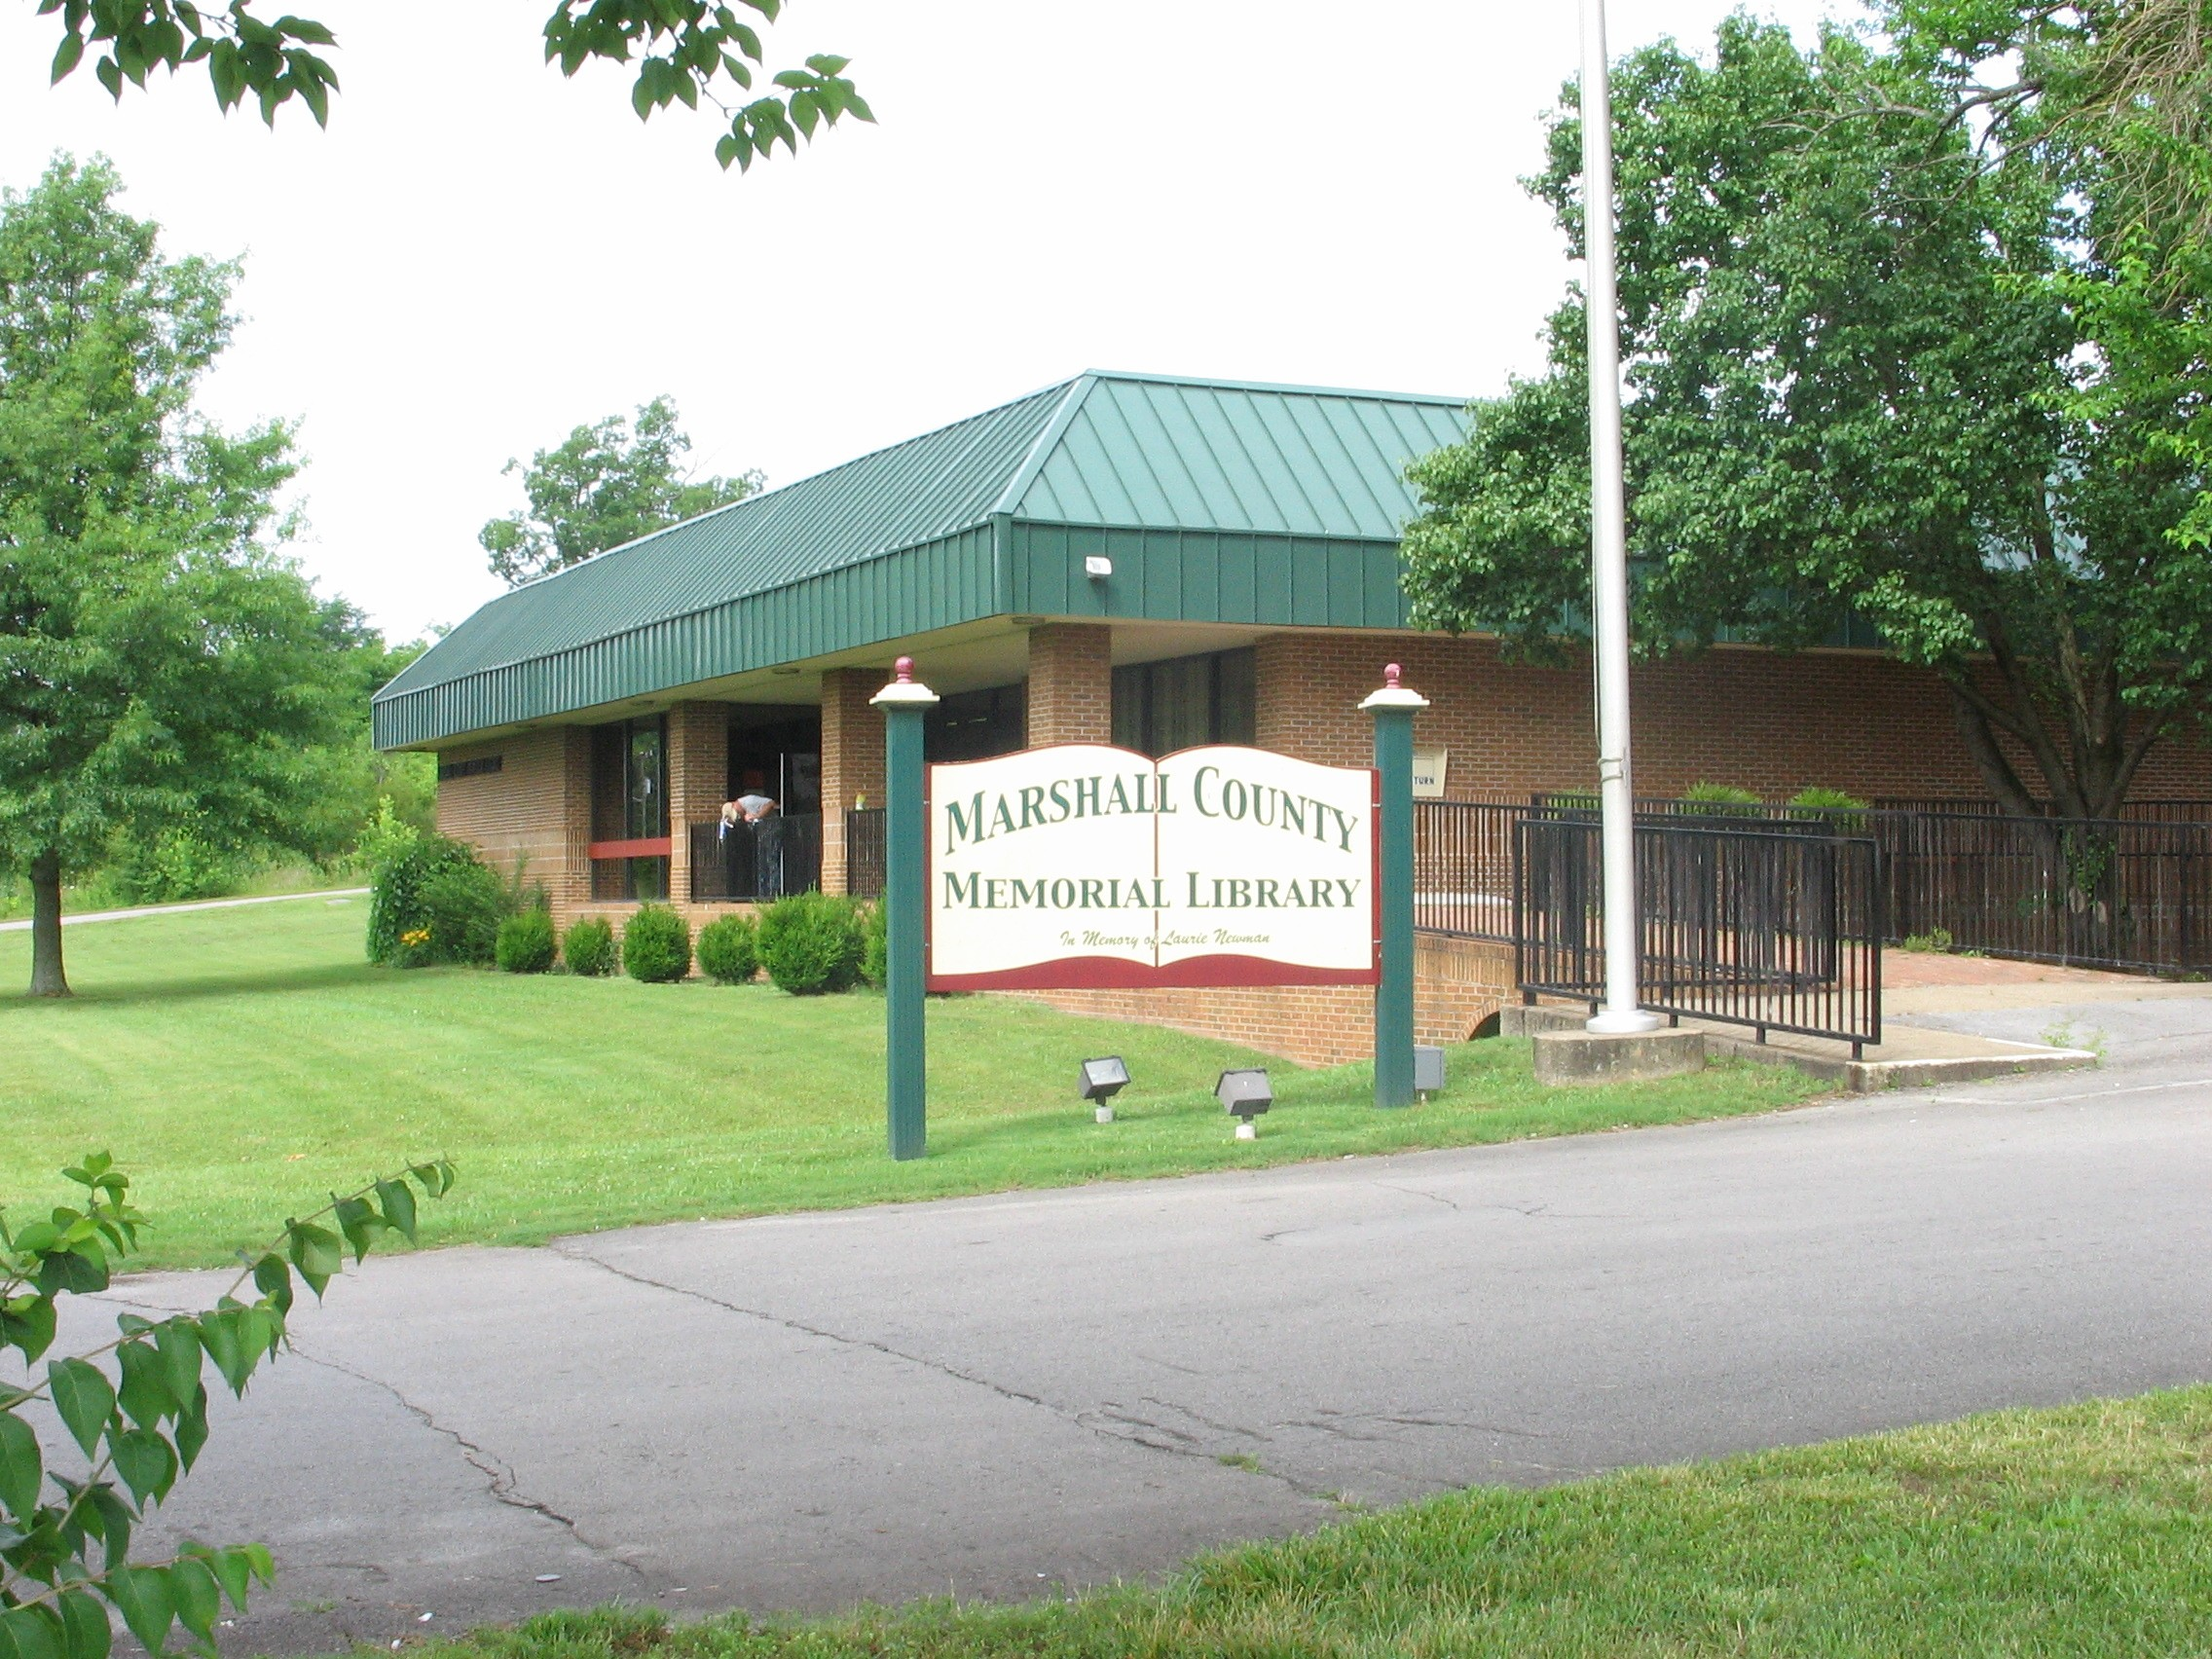 Marshall County Memorial Library